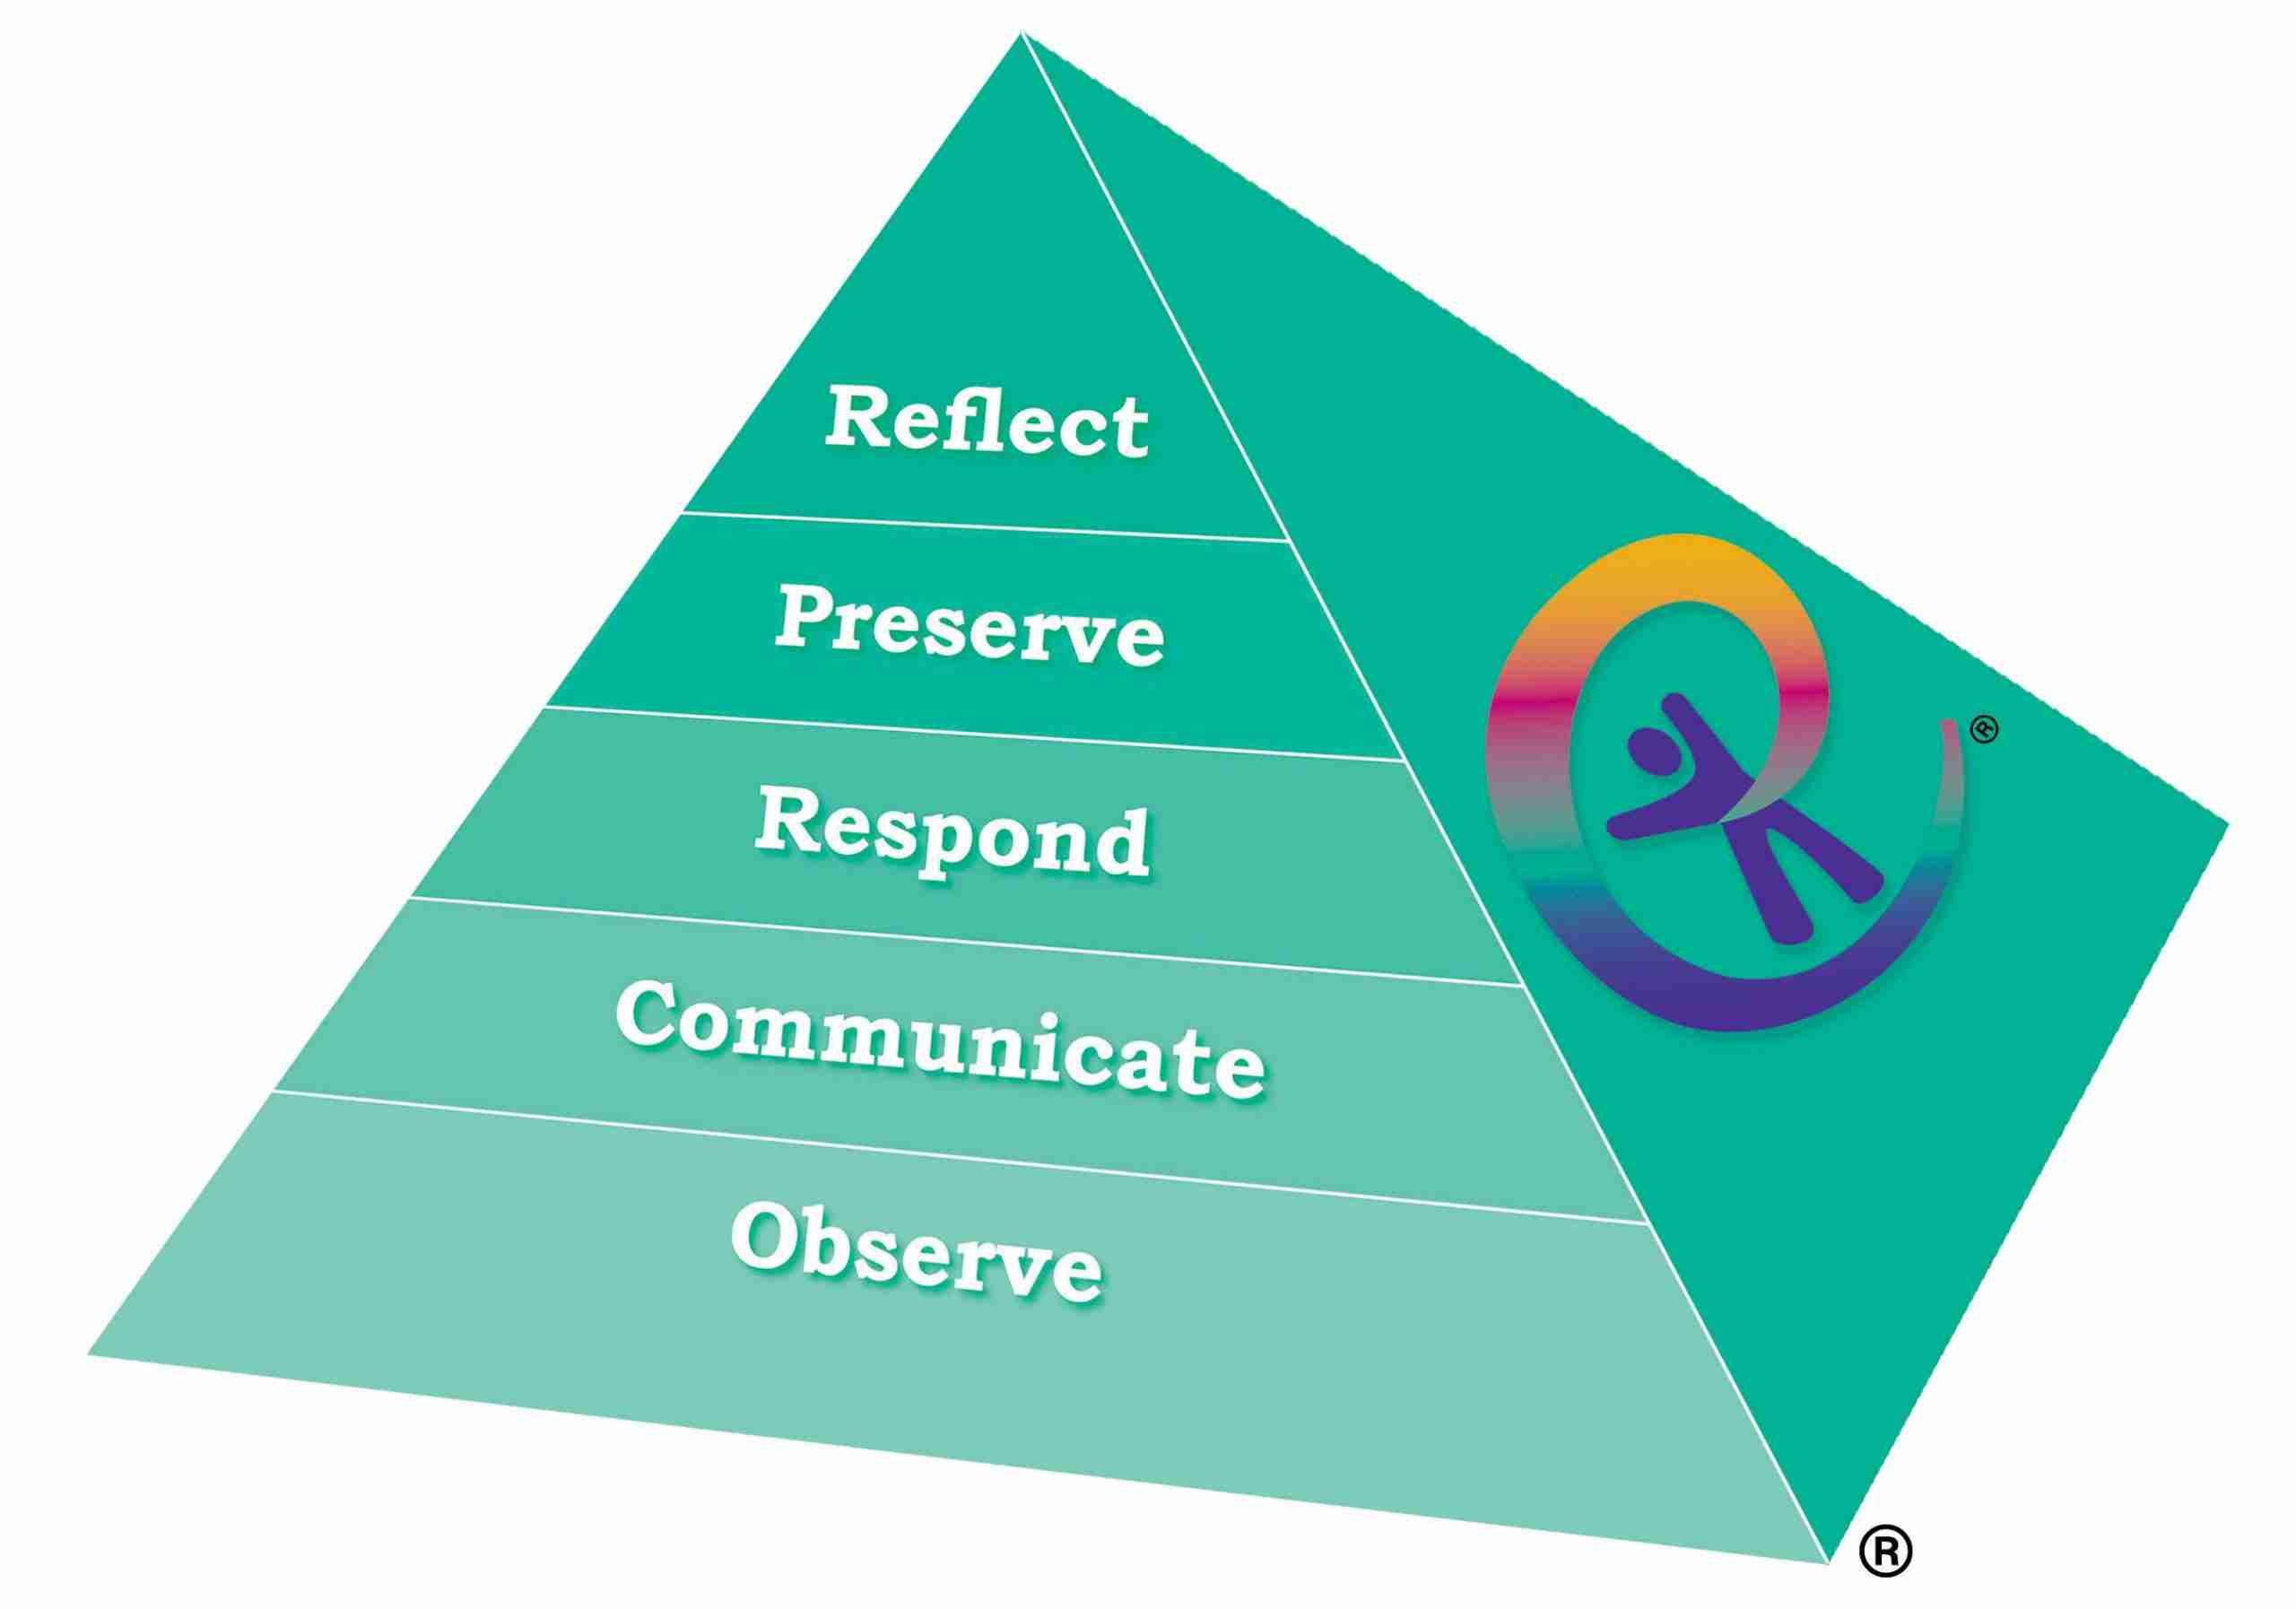 Teal Green Engage with Skills Training Pyramid with the words (from base to top): Observe, Communicate, Respond, Preserve, Reflect.